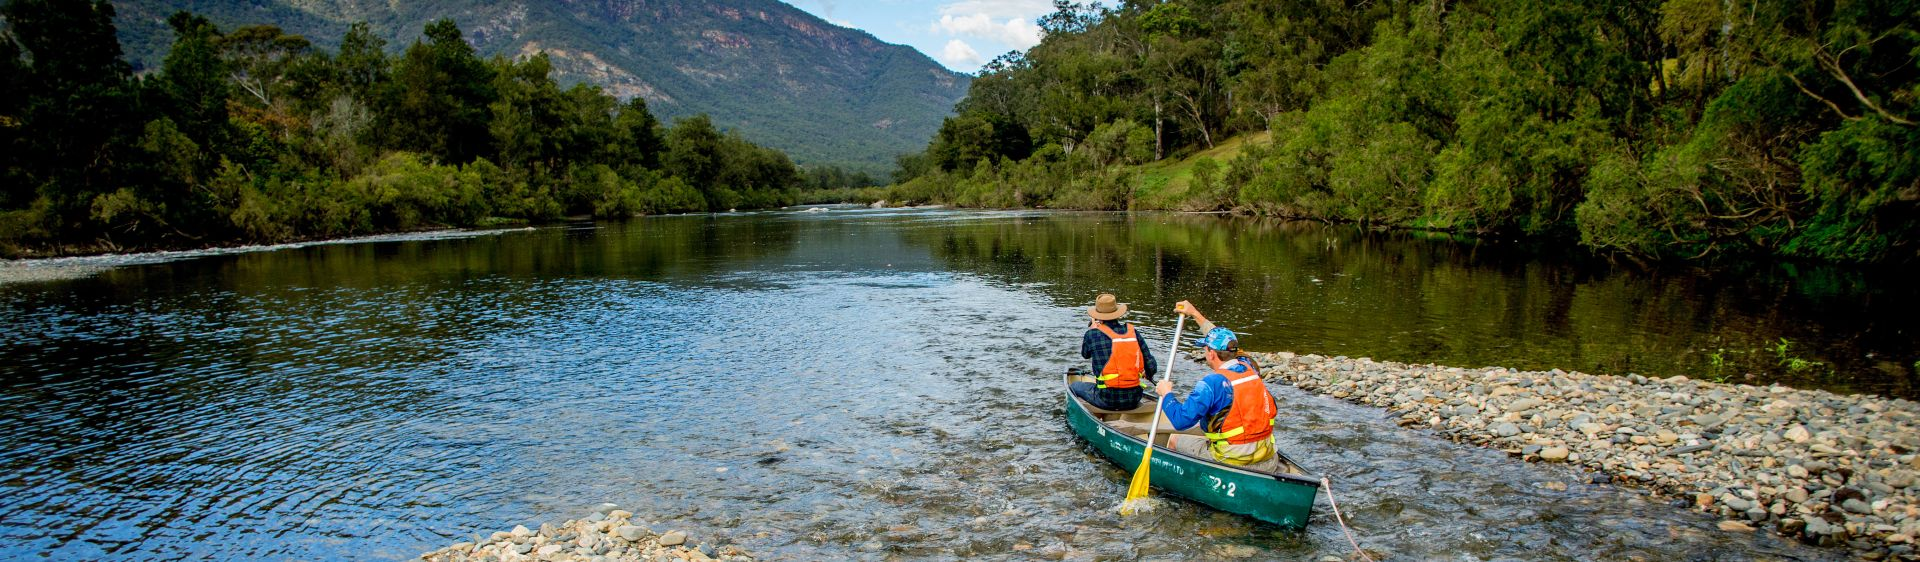 Canoeists exploring the Macleay River in Bellbrook, Macleay Valley Coast